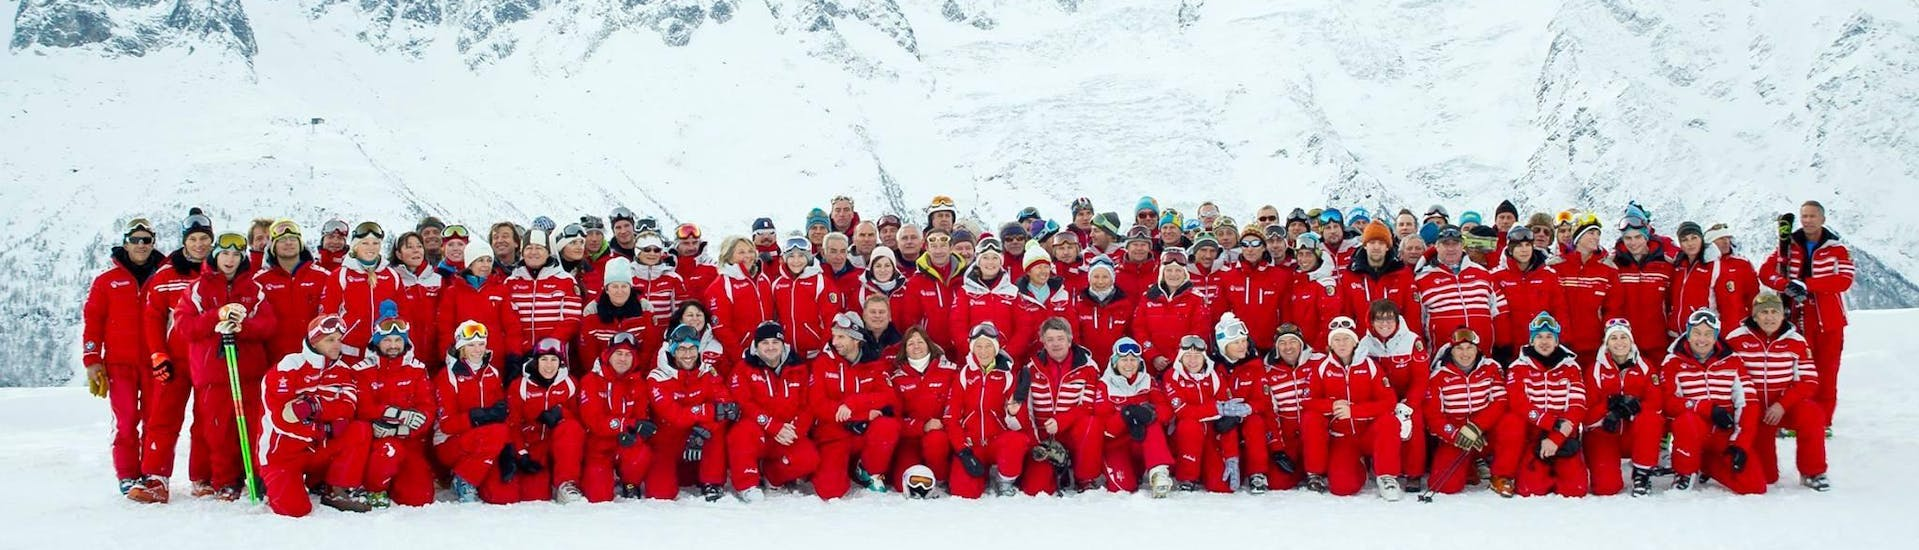 The whole team of the ski school ESF Chamonix is posing for a picture in front of a snow-covered mountain.